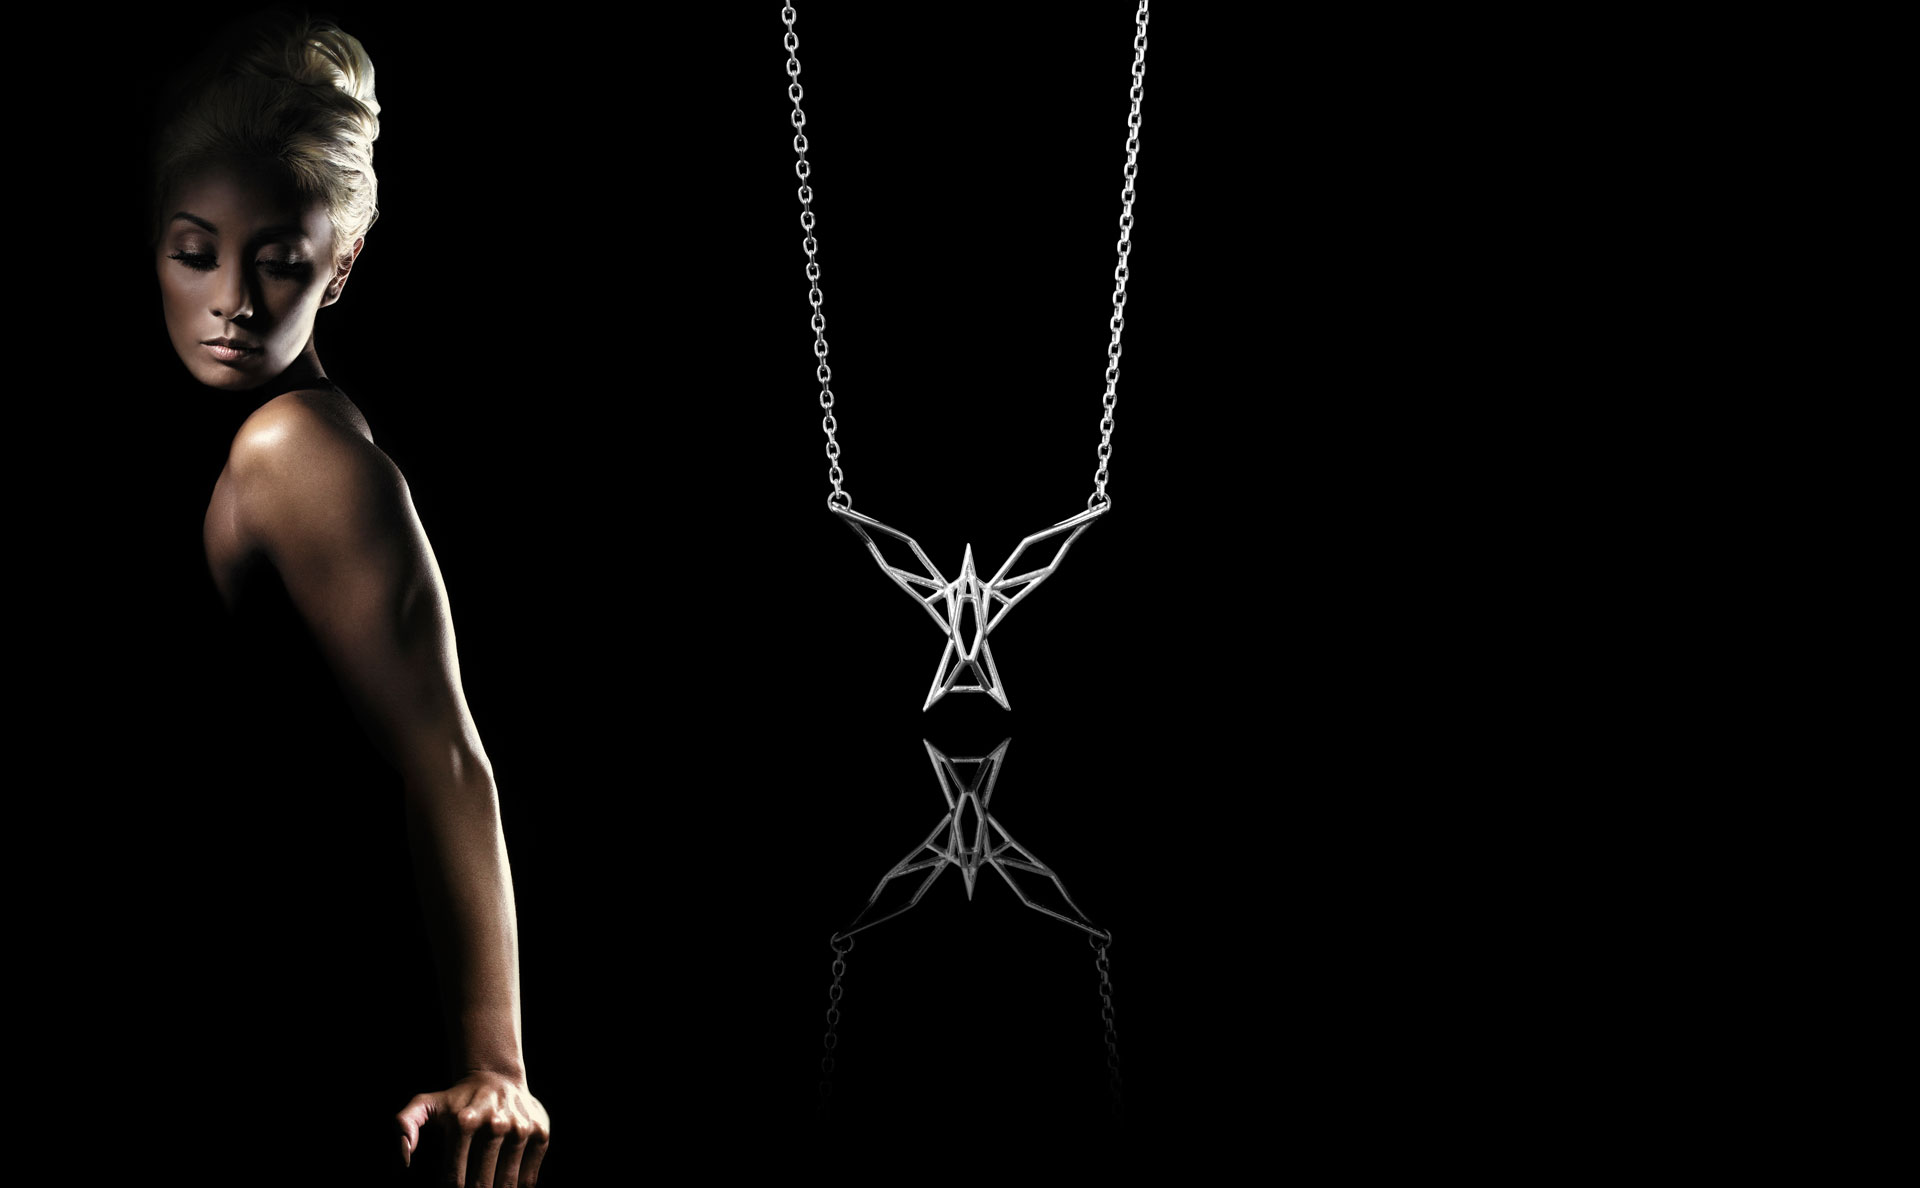 SEB Silver Artic Tern Bird Necklace Icelandic Jewellery Geometric Design Black Scandinavian Elegant